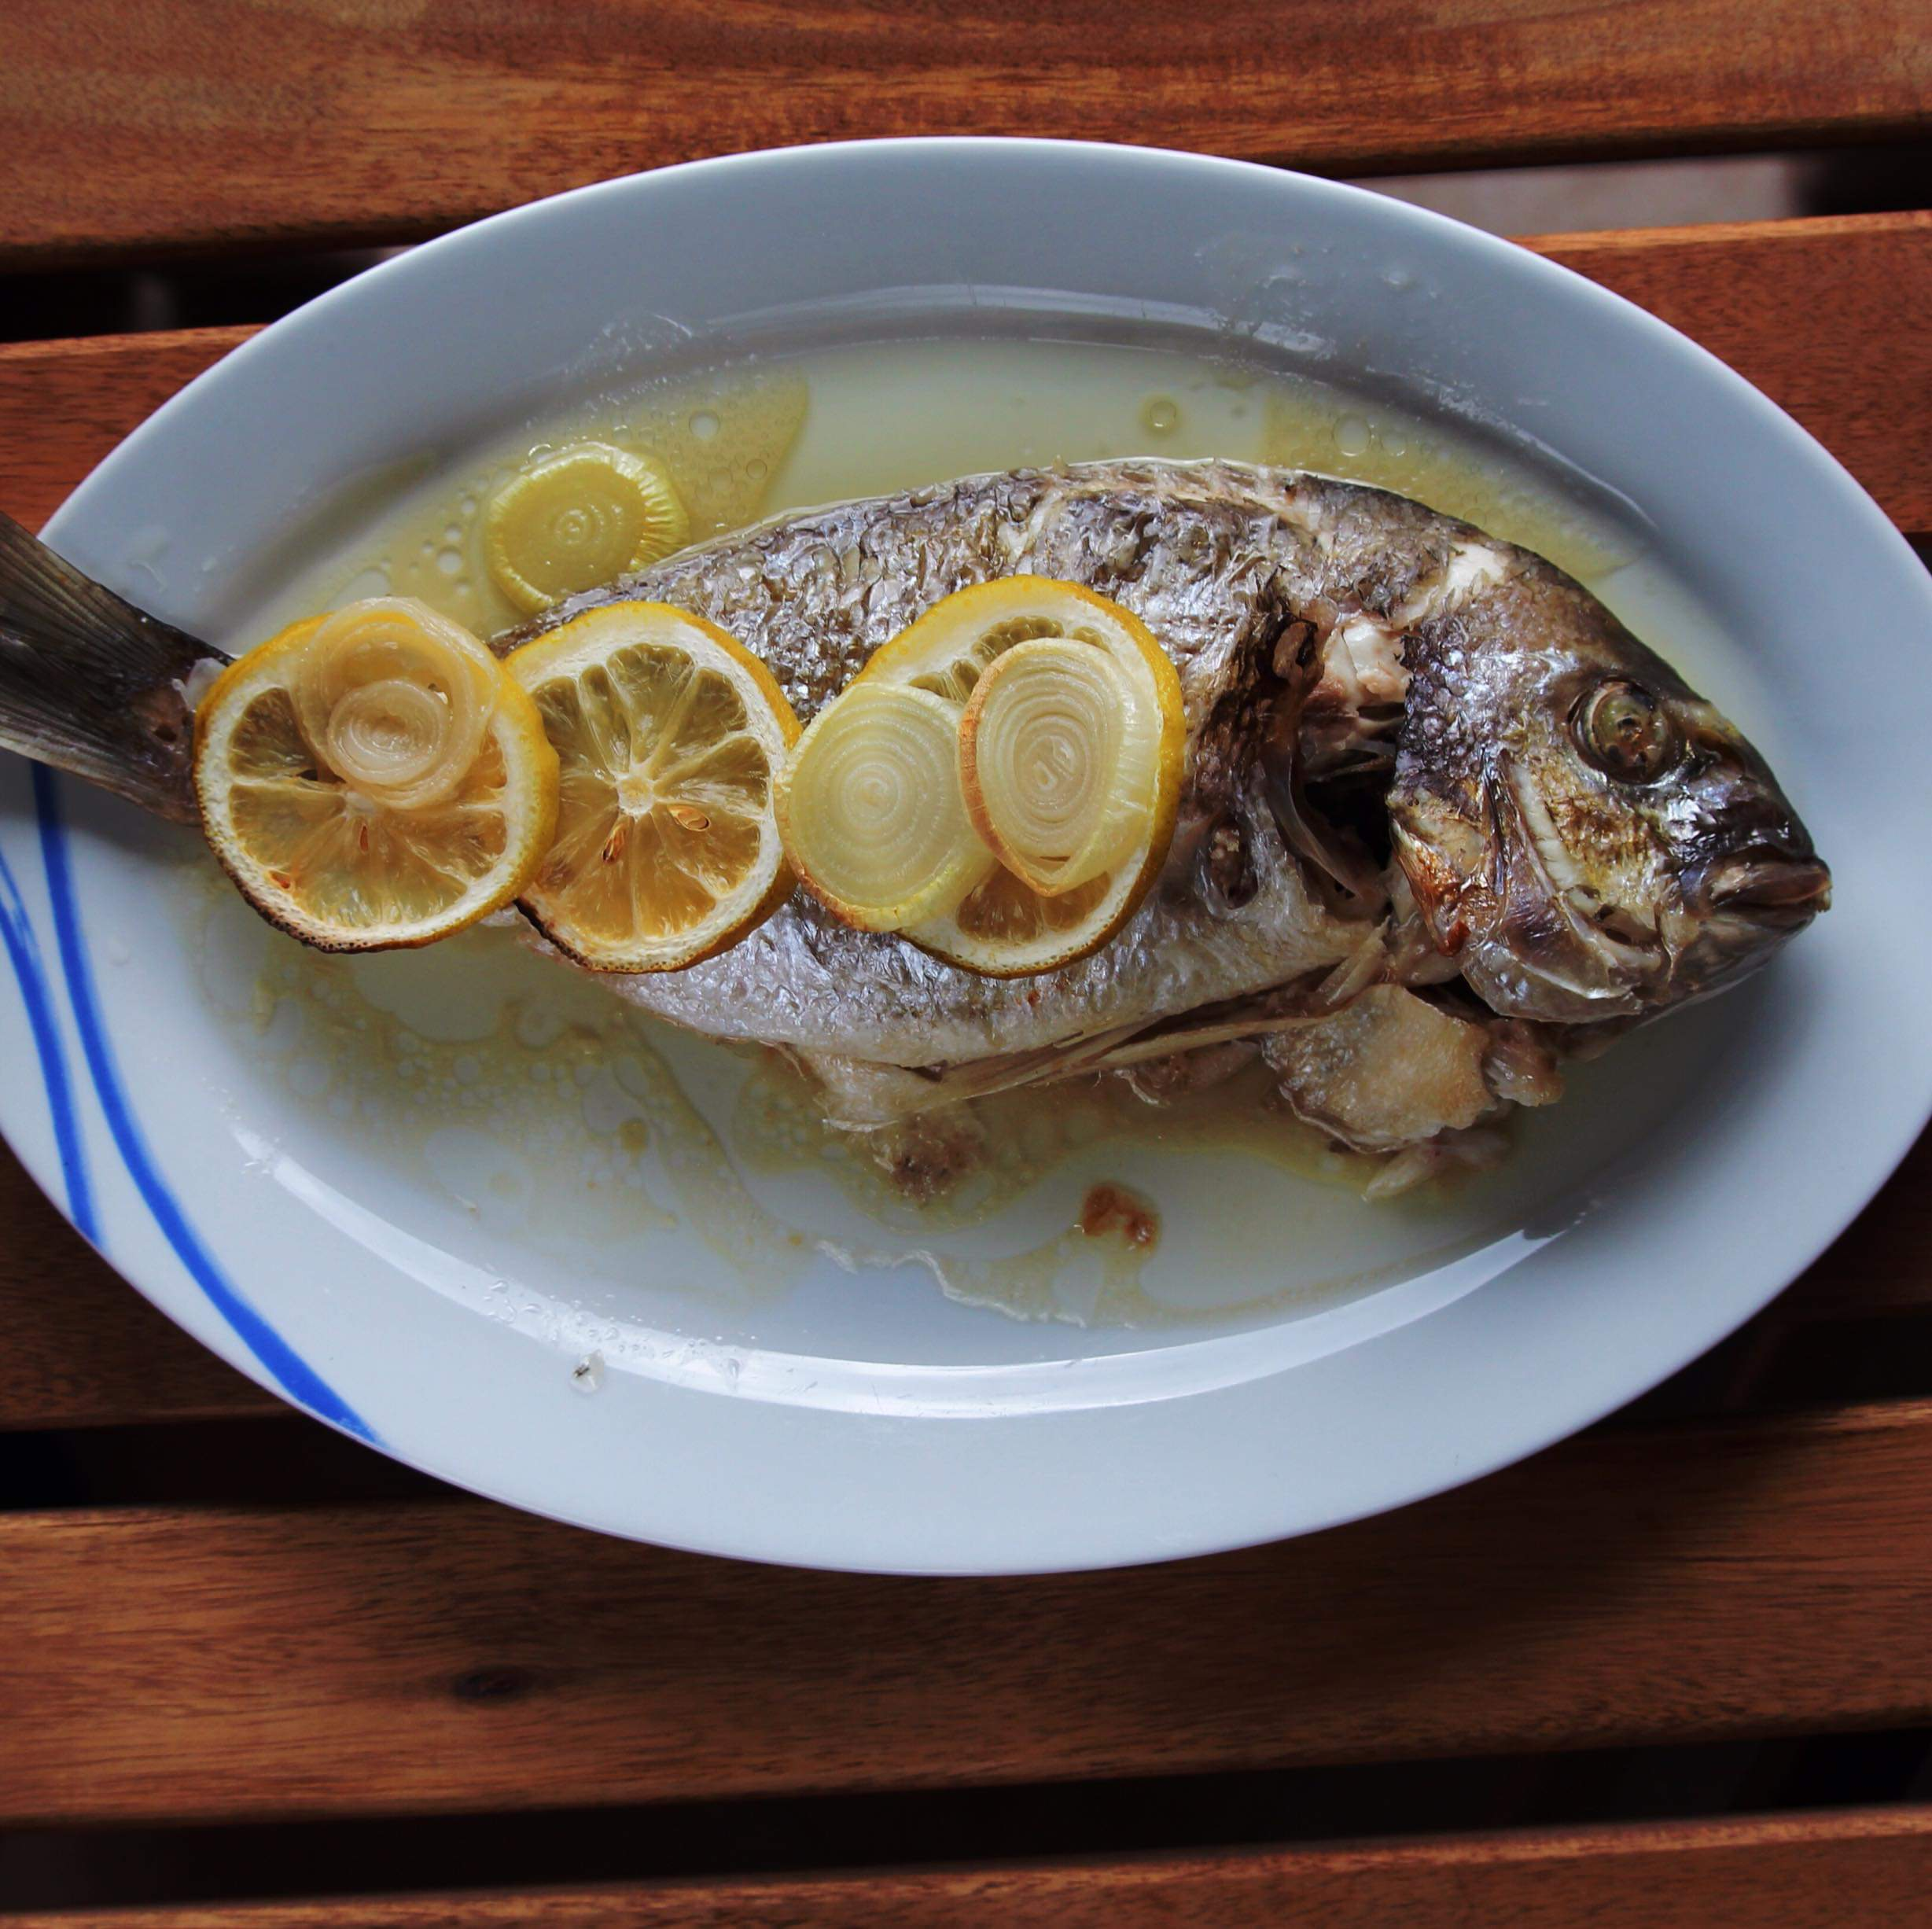 """""""This simple, healthy, and delicious Mediterranean fish, also known as 'Greek Sea Bass', should be cooked whole,"""" says Christala. """"The cavity of the fish can be stuffed with lemon and other ingredients for added flavor. It is a very mild-tasting and versatile fish. The oregano and lemon make it truly Greek cuisine that many will enjoy. Can be found wild-caught in many stores. Enjoy!"""""""